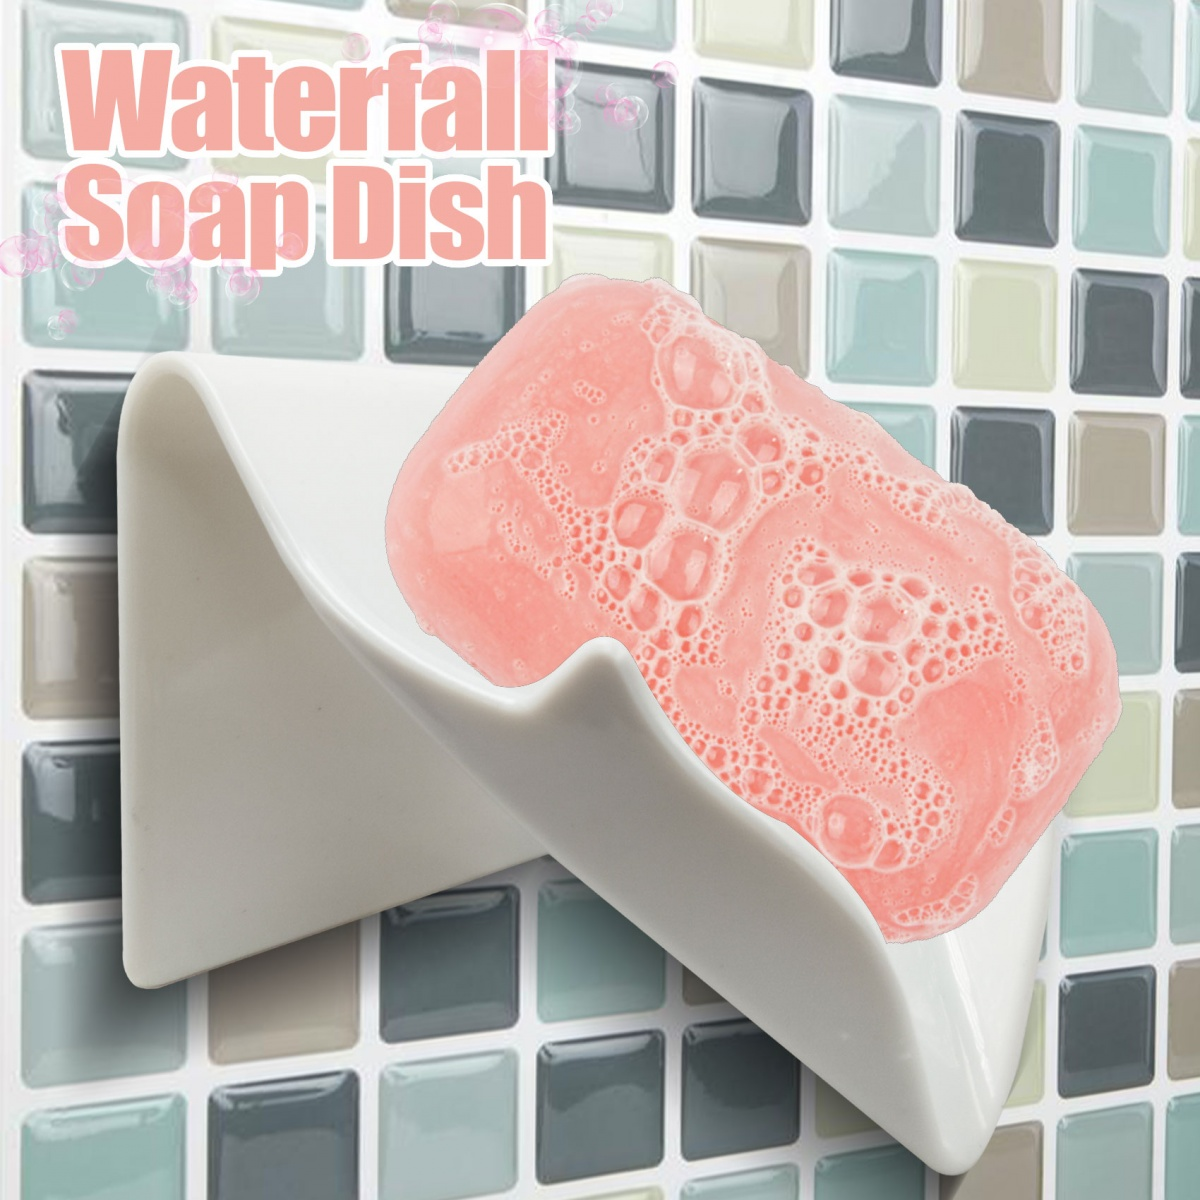 Waterfall Soap Dish - White